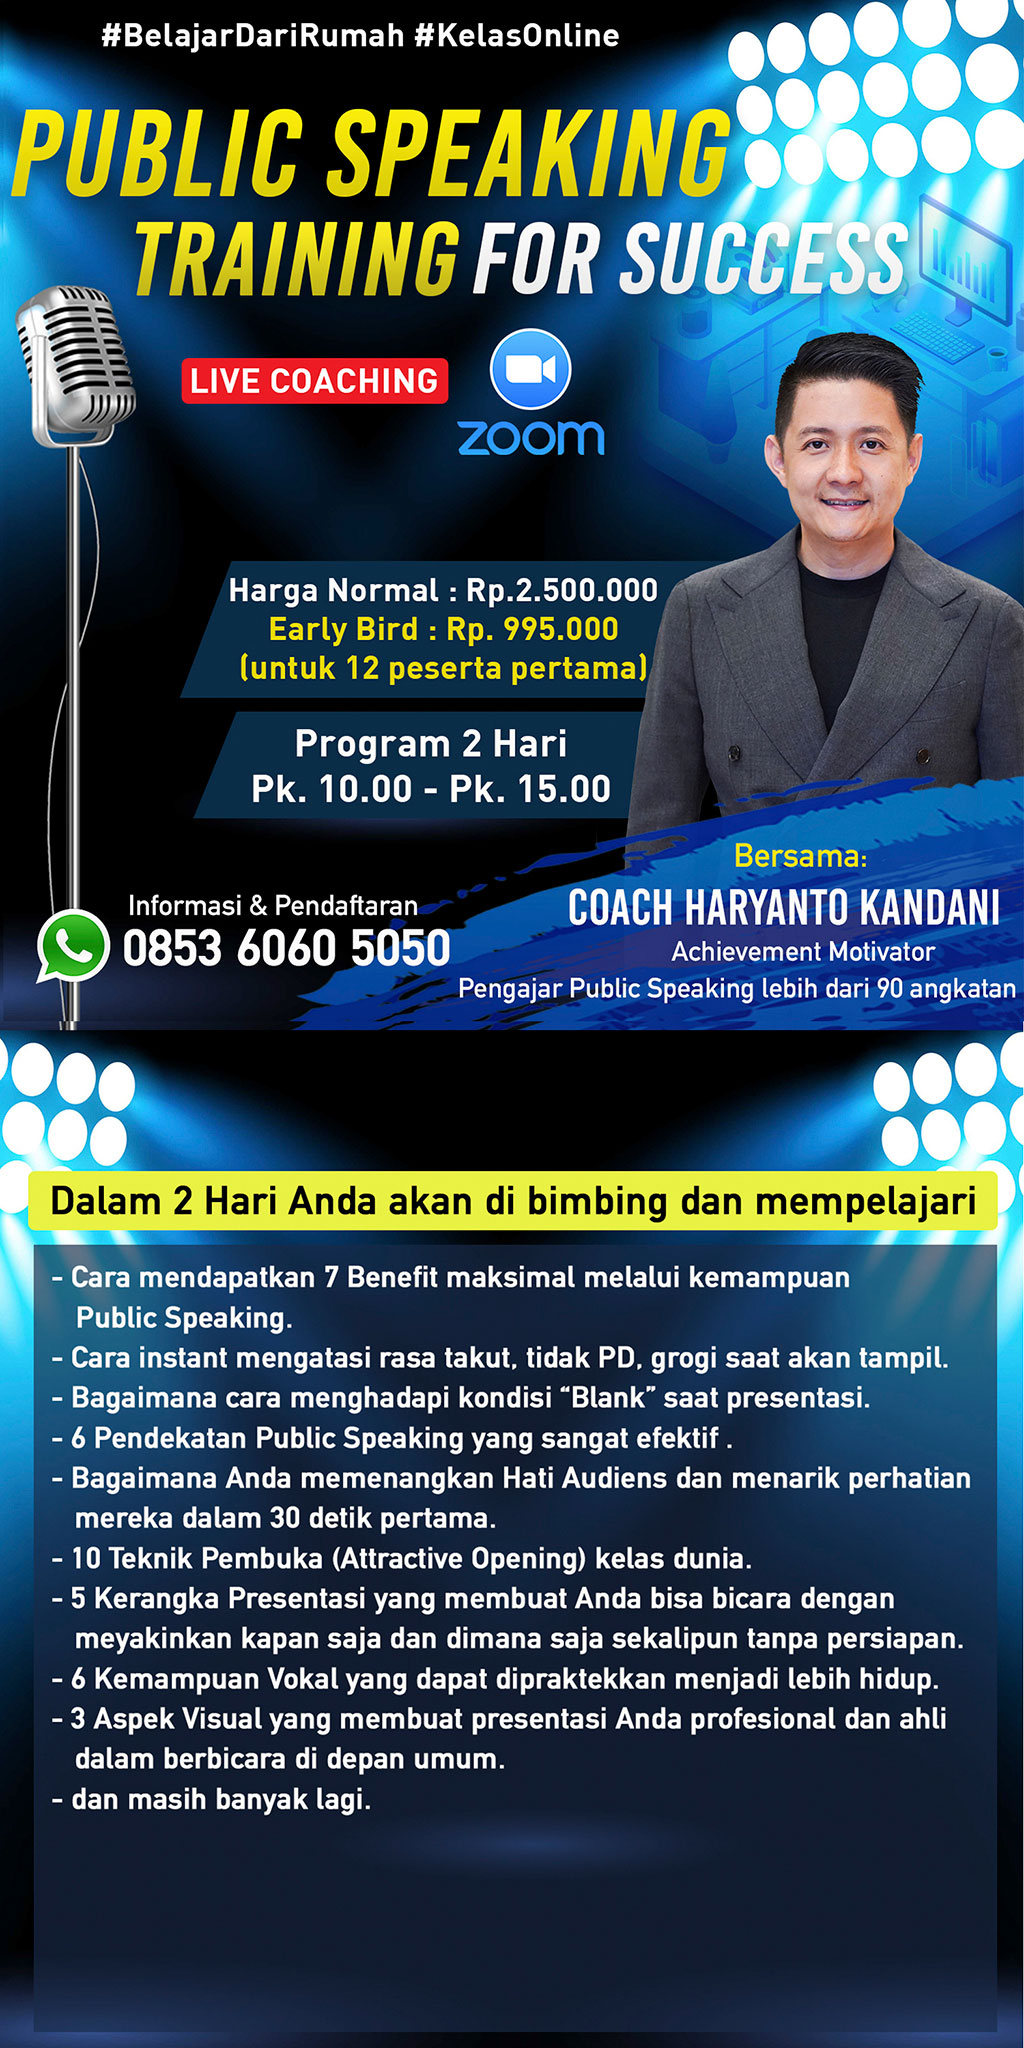 PUBLIC SPEAKING TRAINING FOR SUCCESS